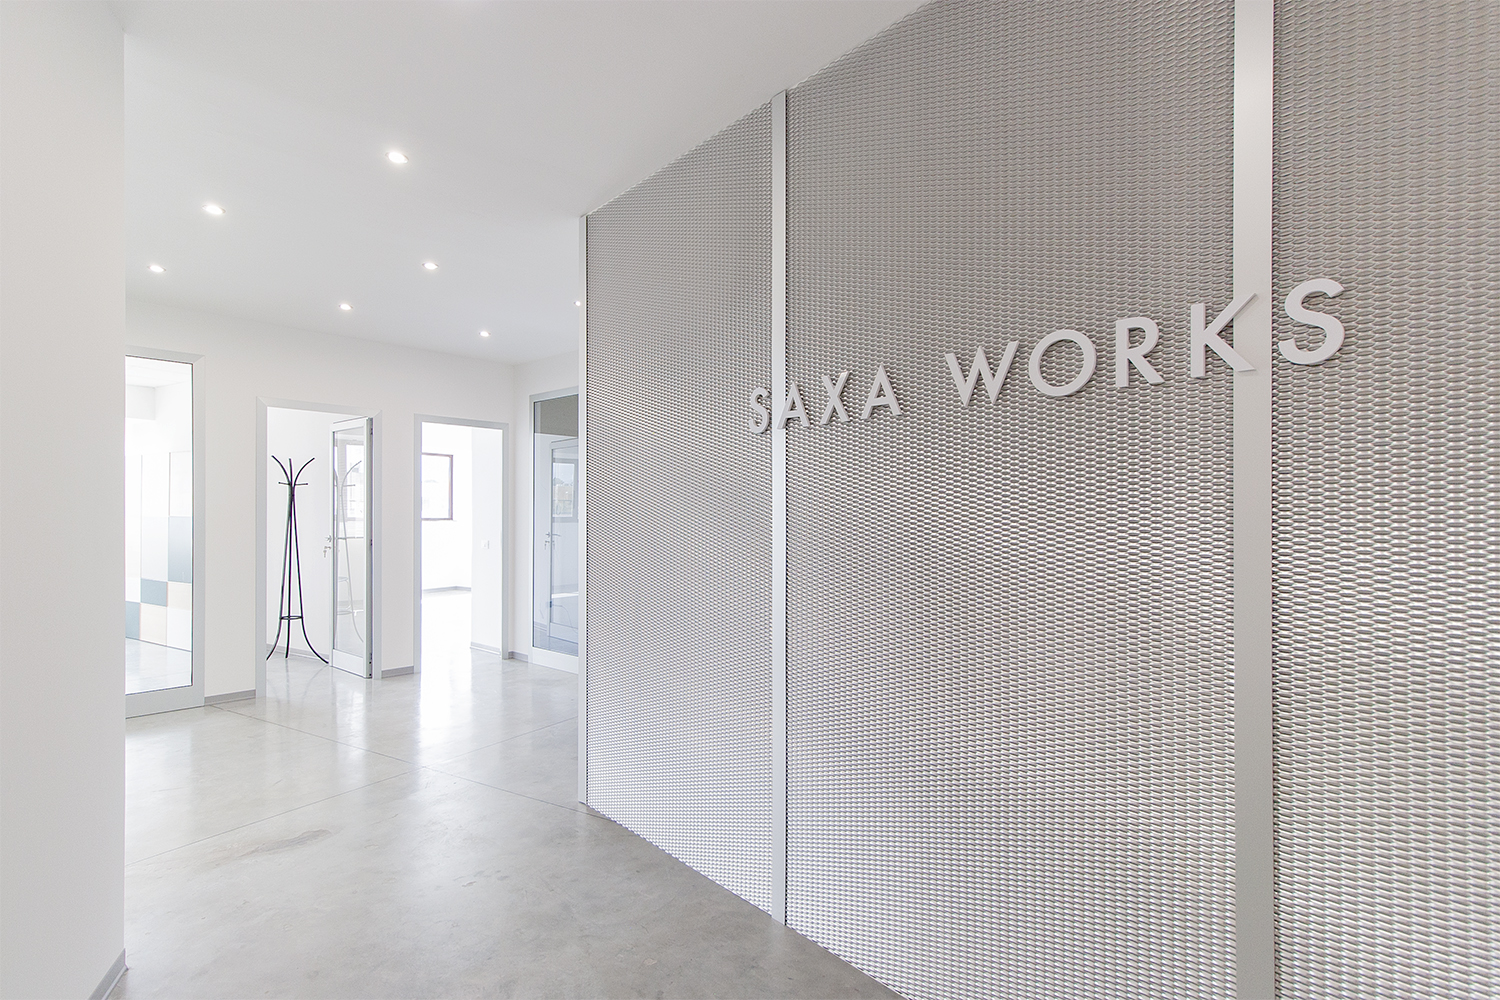 saxaworks1